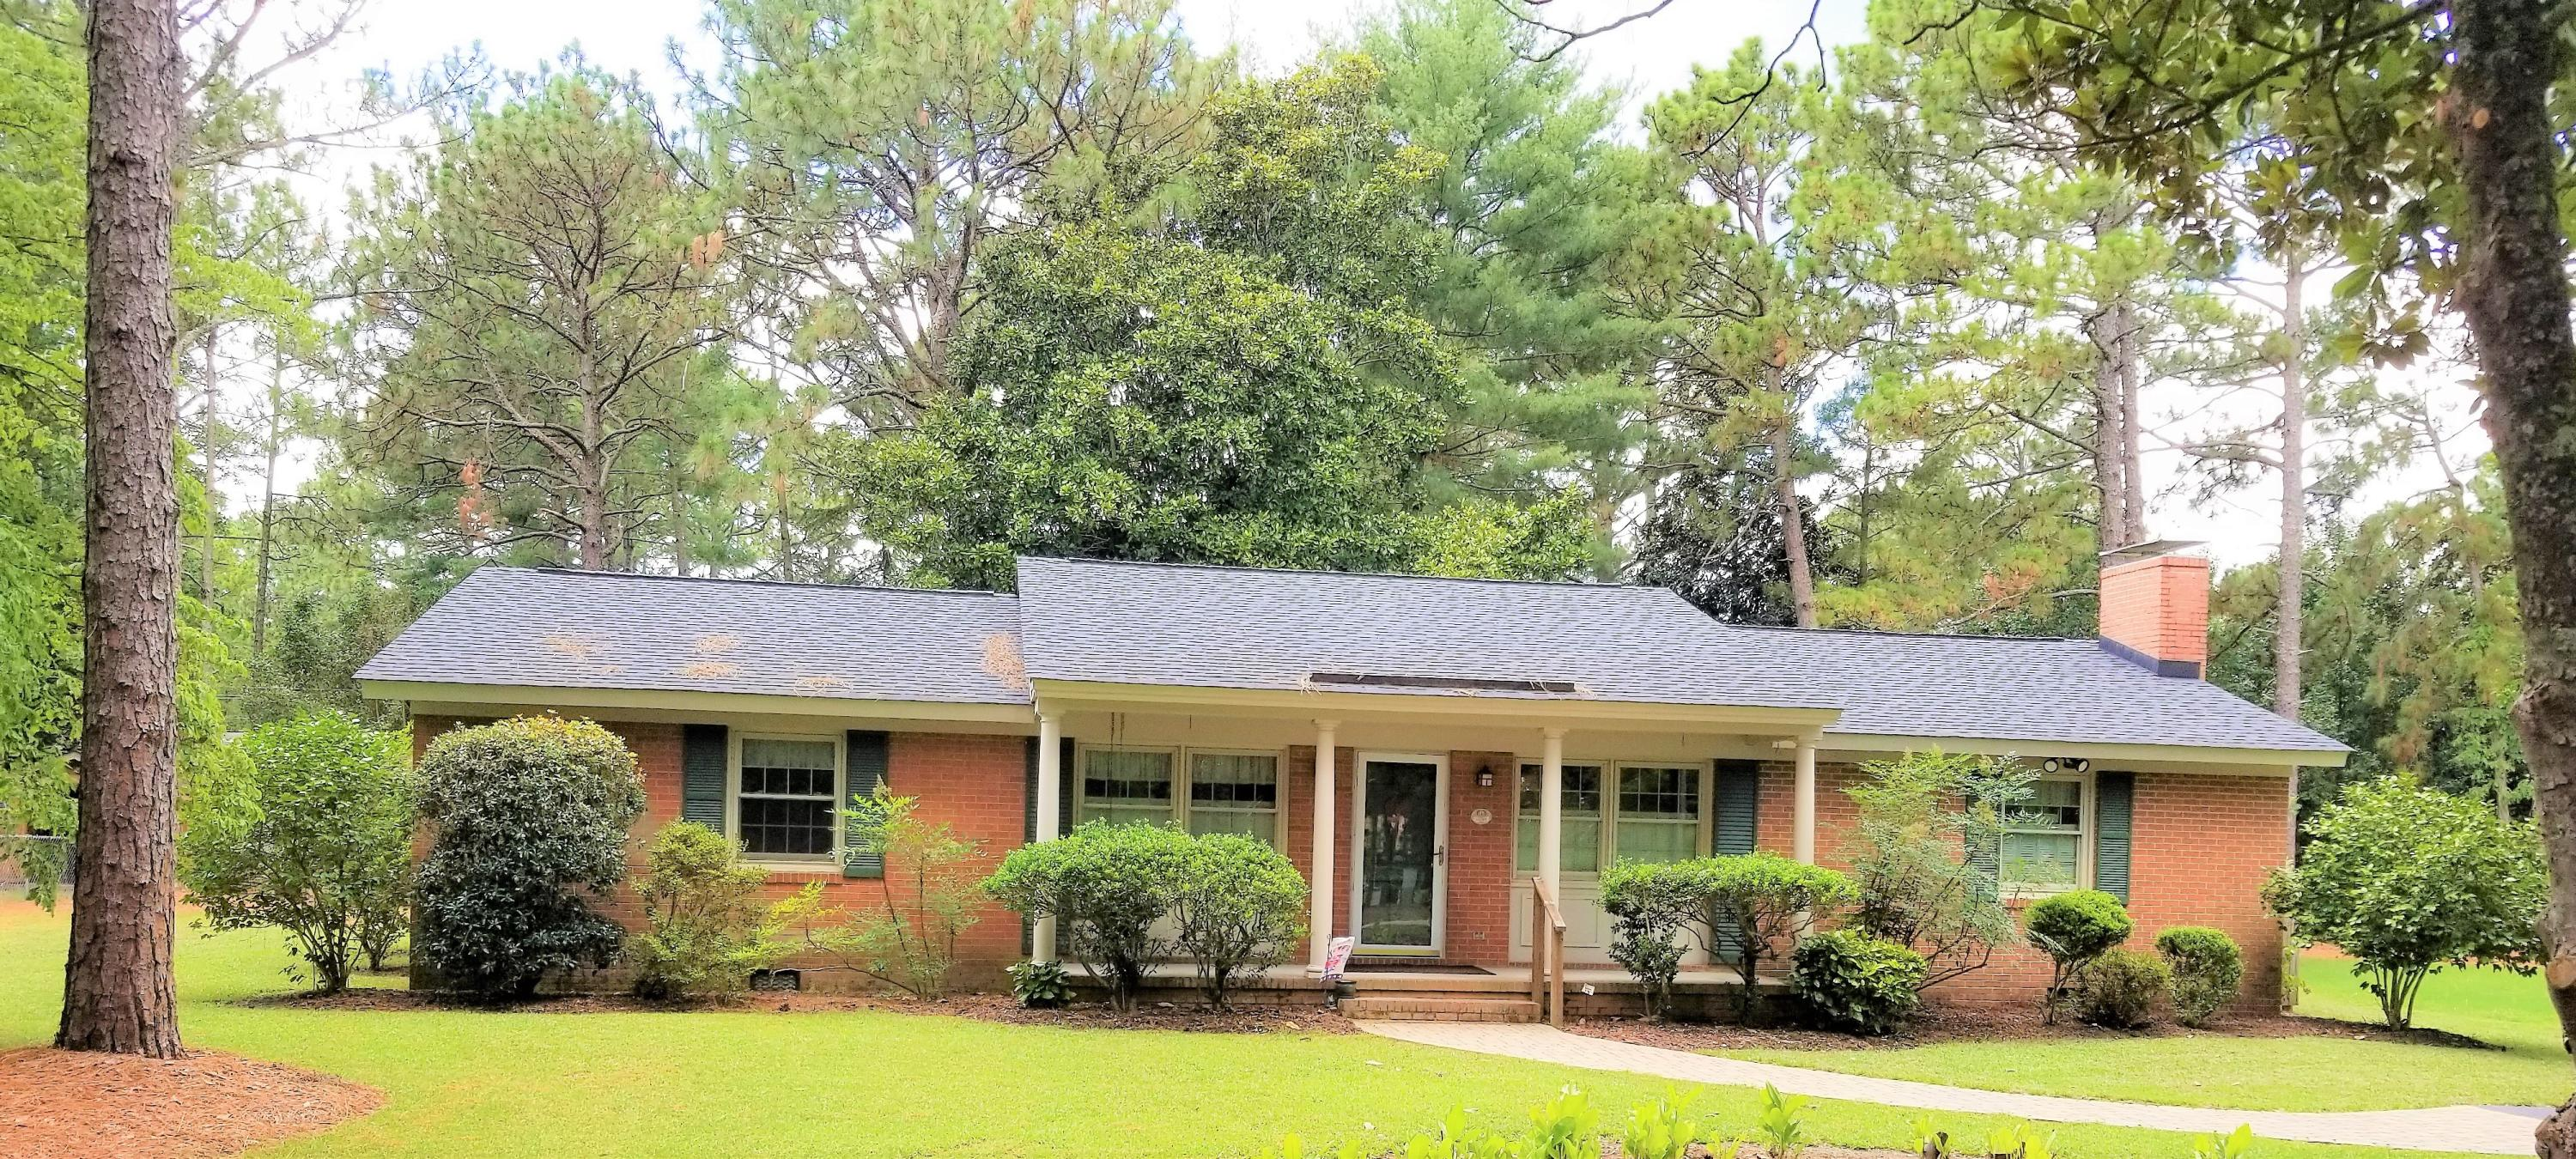 17  Harmon Drive, Whispering Pines in Moore County, NC 28327 Home for Sale